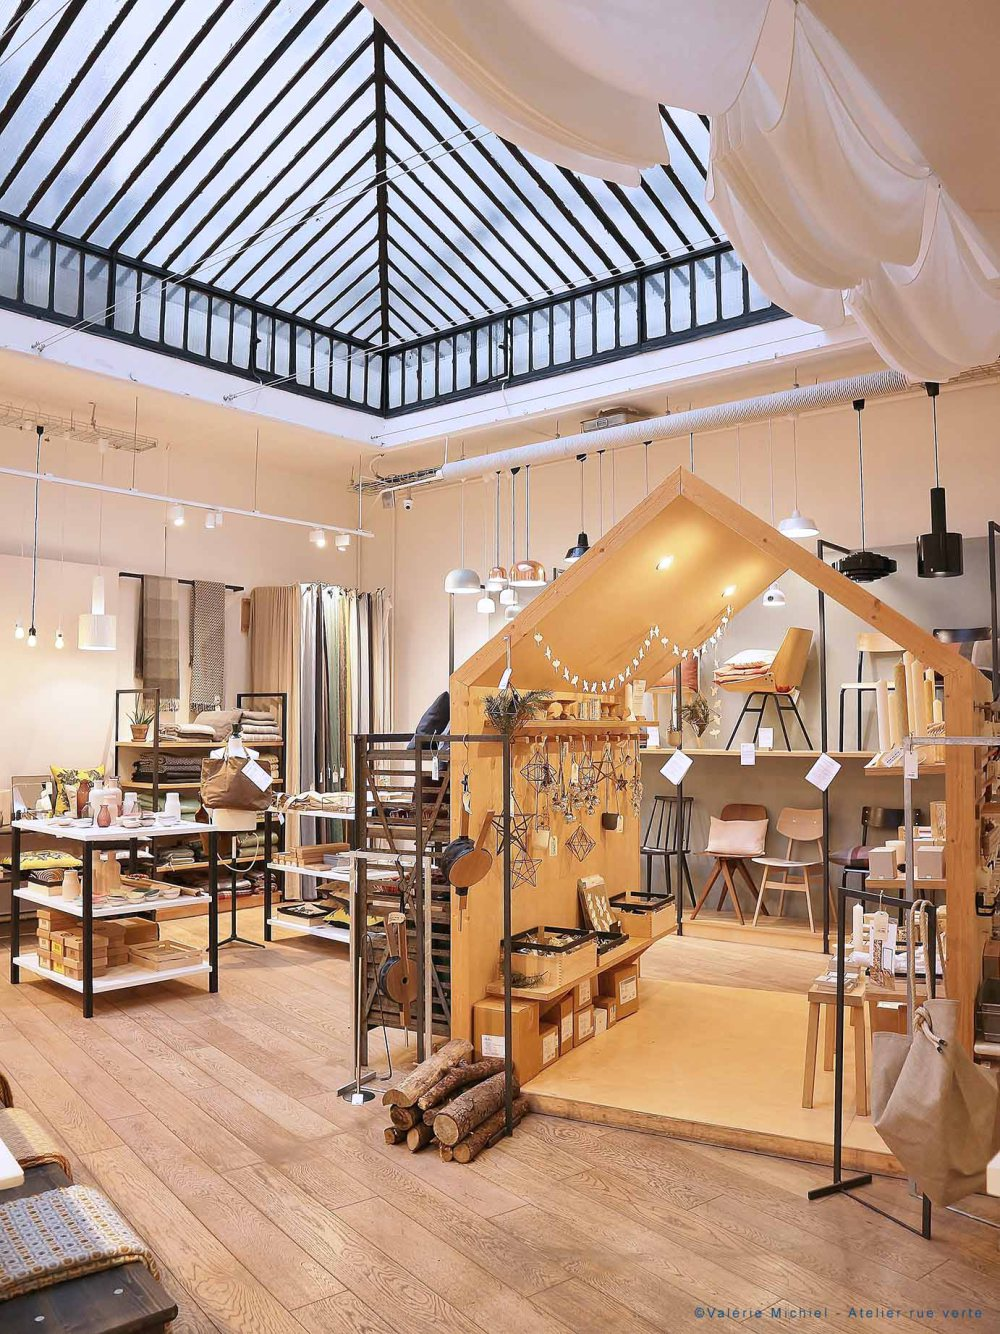 Concept Design Stores in Paris You Should Visit maison & objet Maison & Objet Paris: January edition in review Concept Design Stores in Paris You Should Visit 01 maison & objet Maison & Objet Paris: January edition in review Concept Design Stores in Paris You Should Visit 01